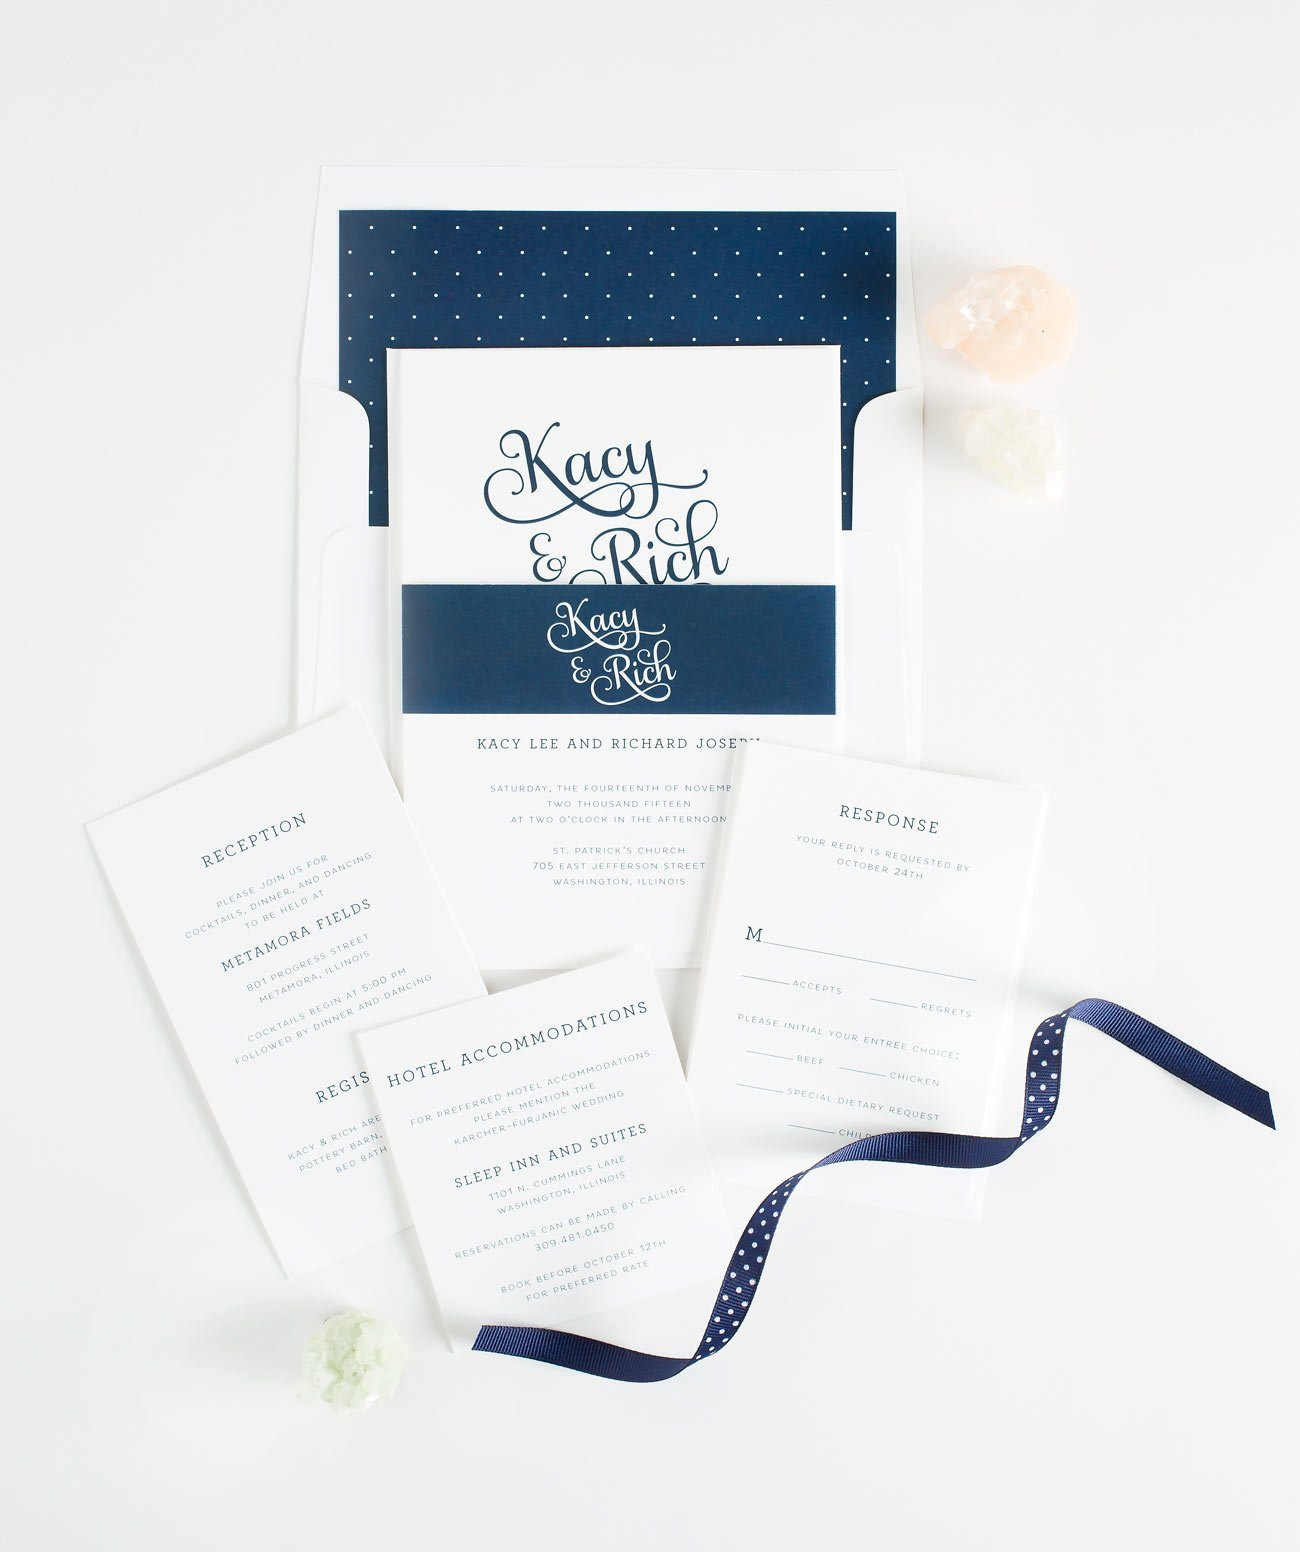 Romantic Wedding Invitations in Blue